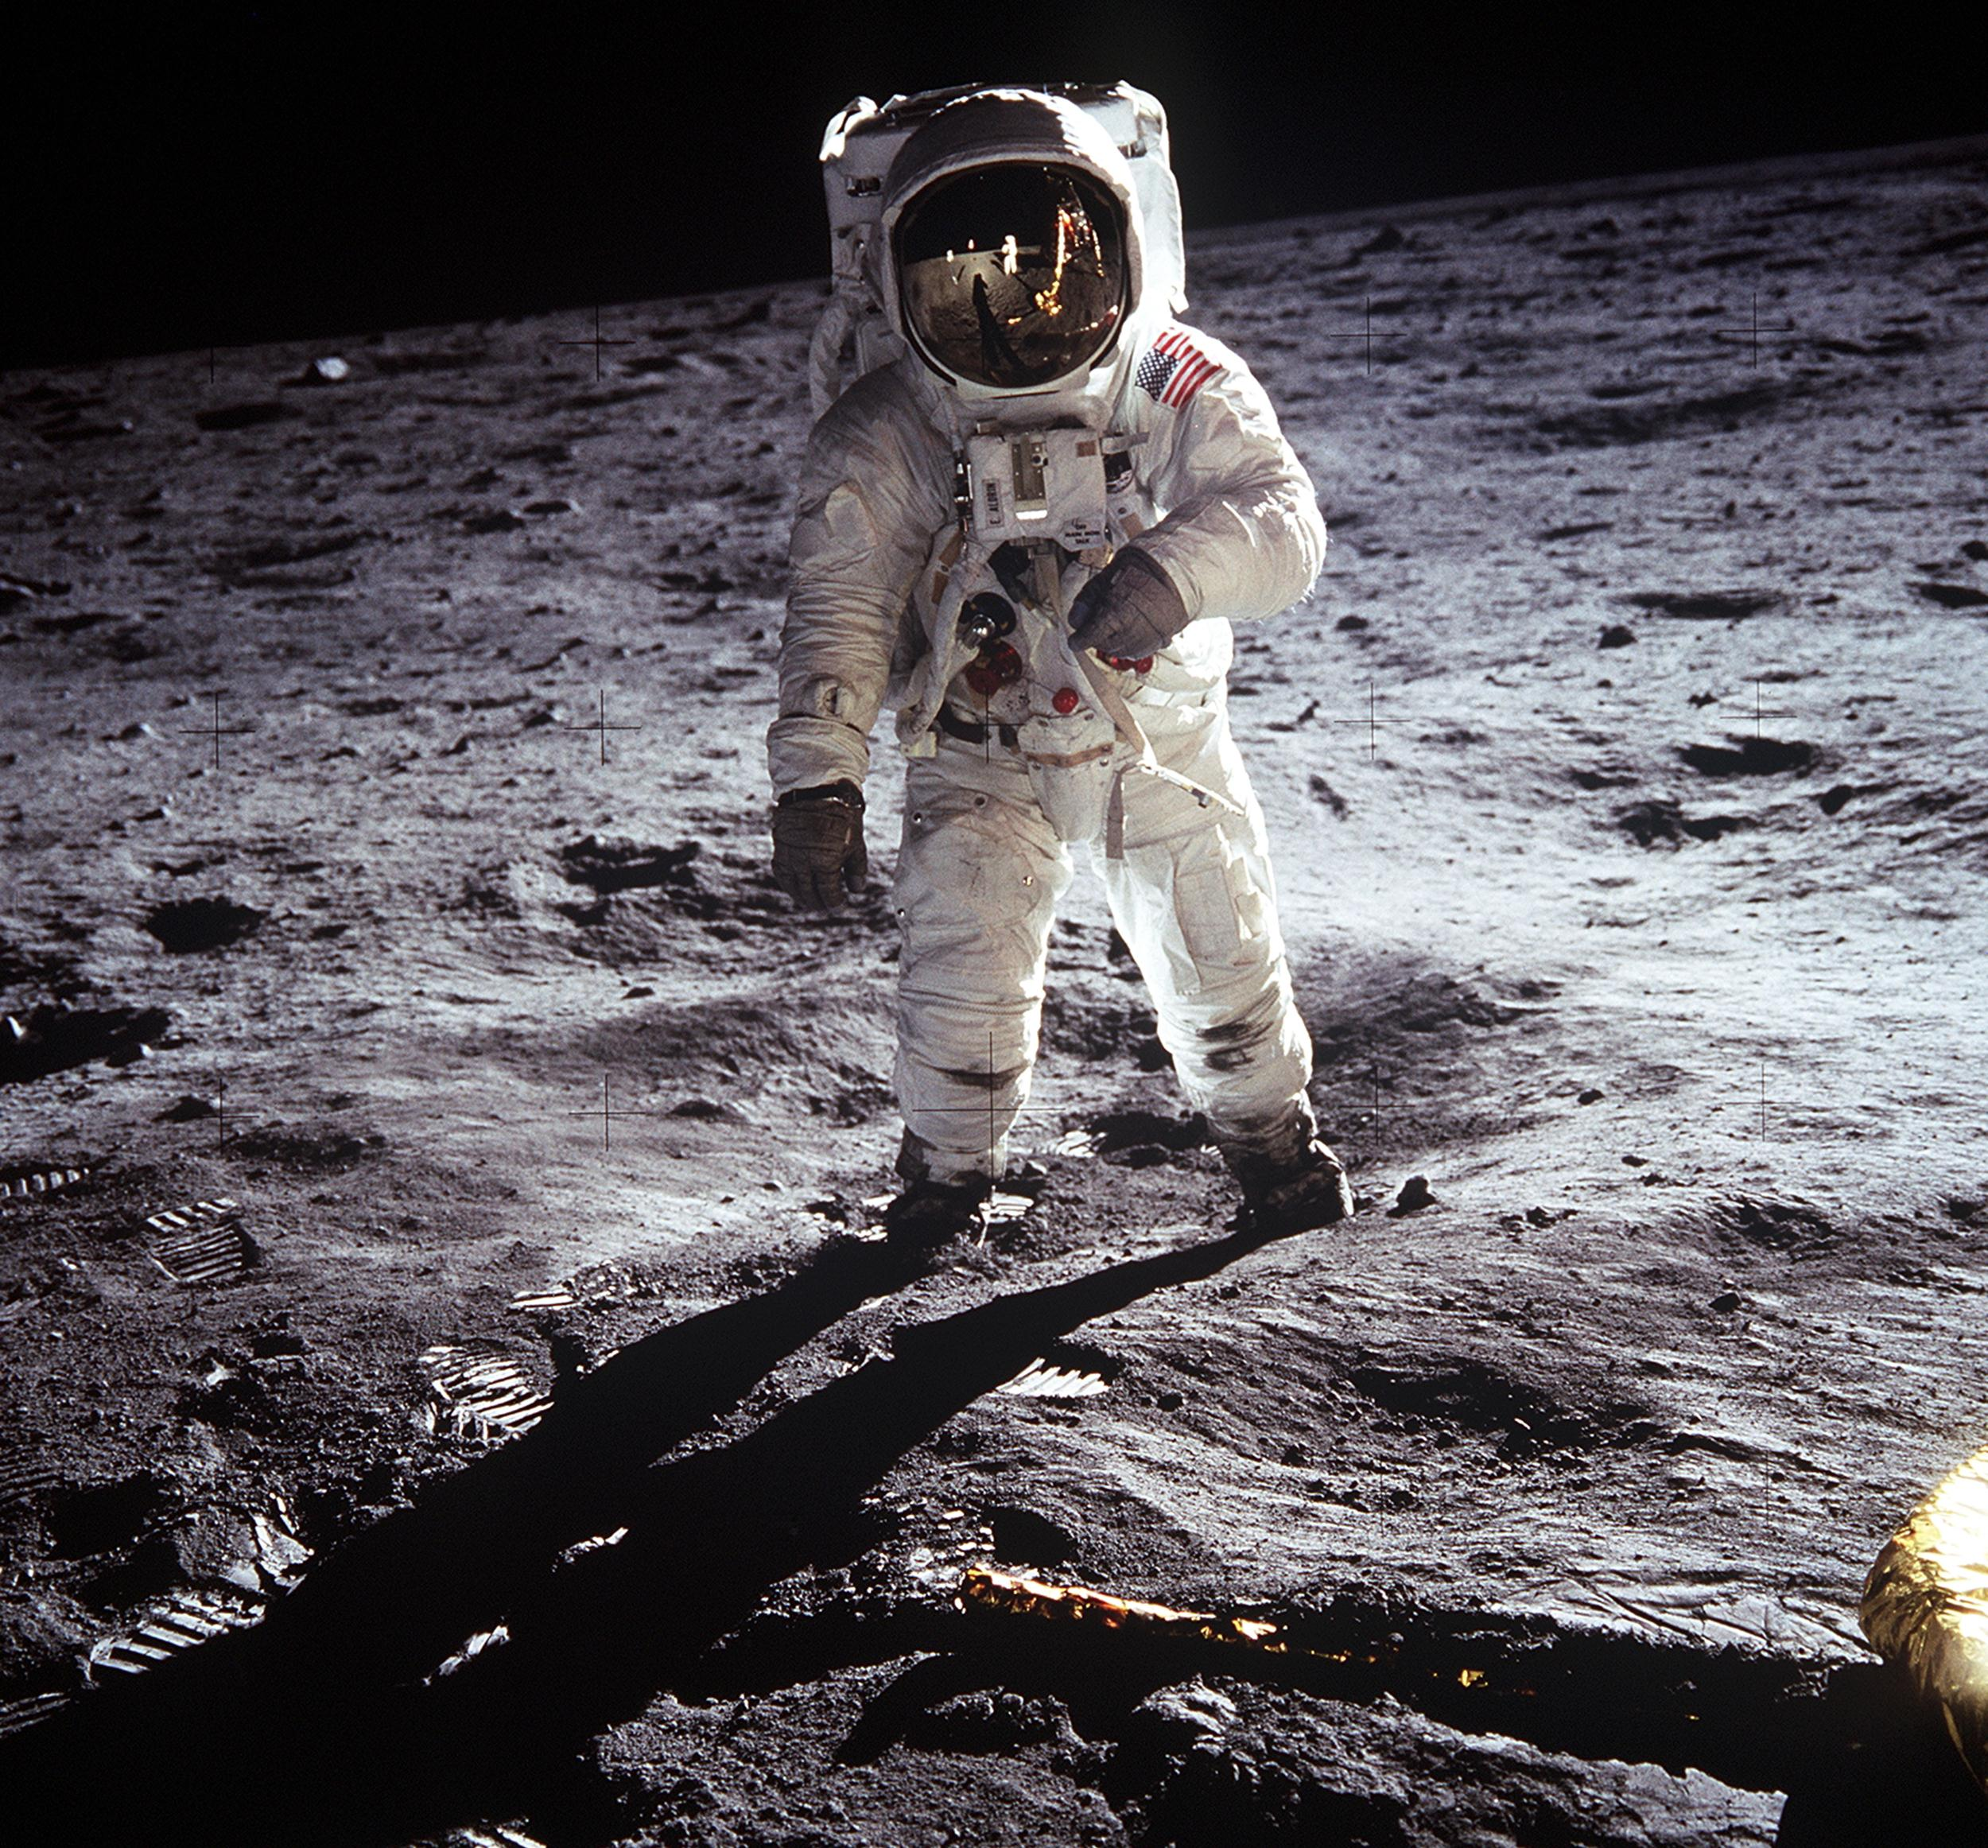 apollo 11 mission landing on the moon - photo #3